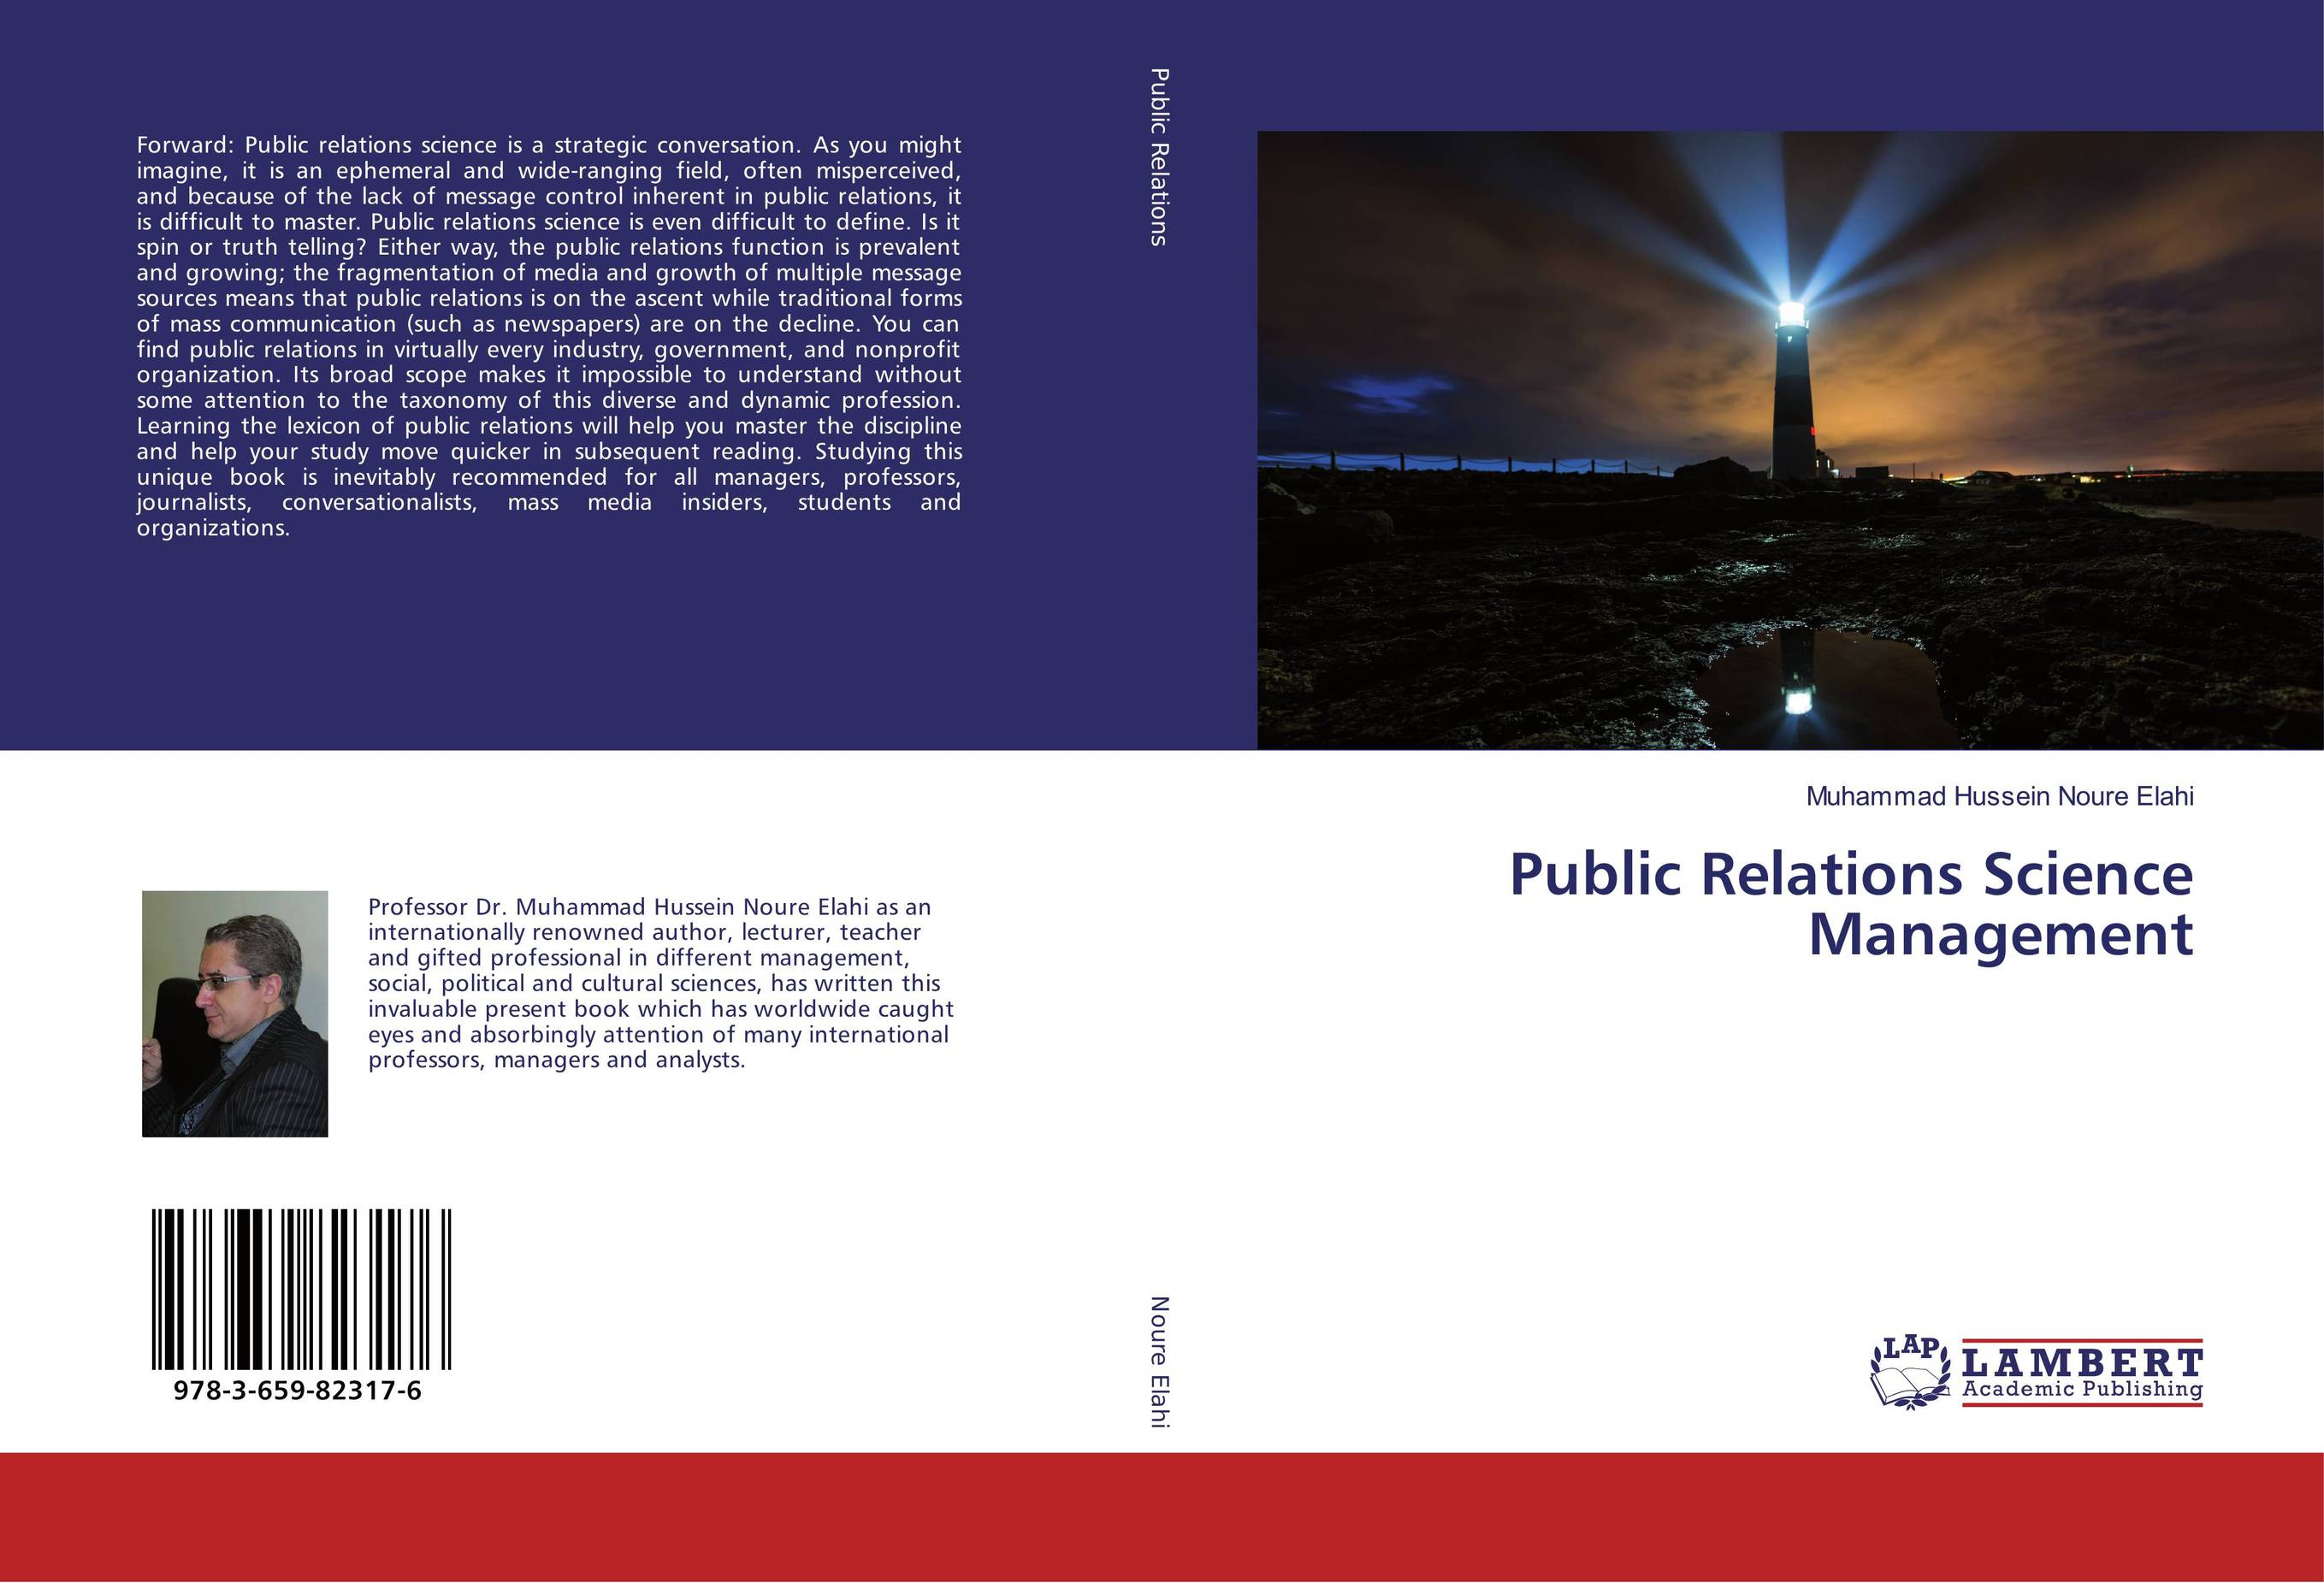 Public Relations Science Management public relations science management